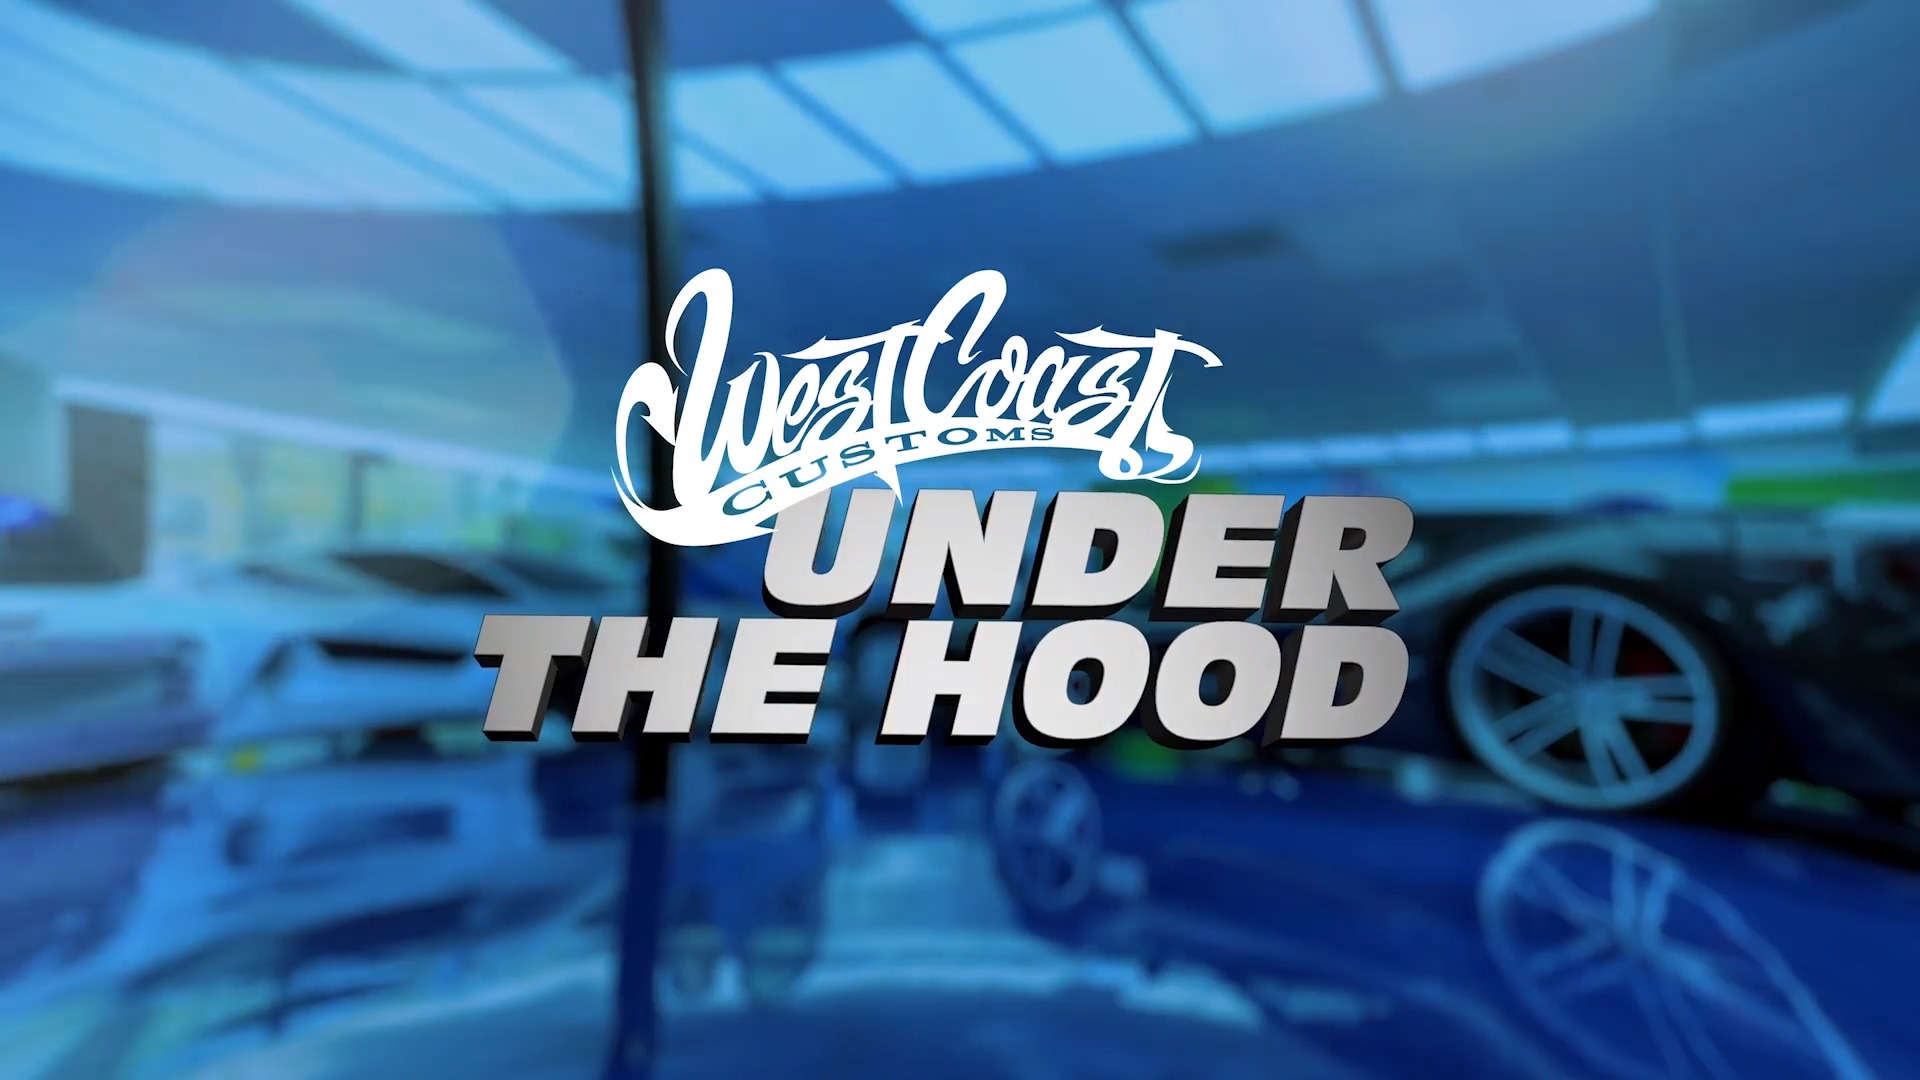 Under the Hood with West Coast Customs